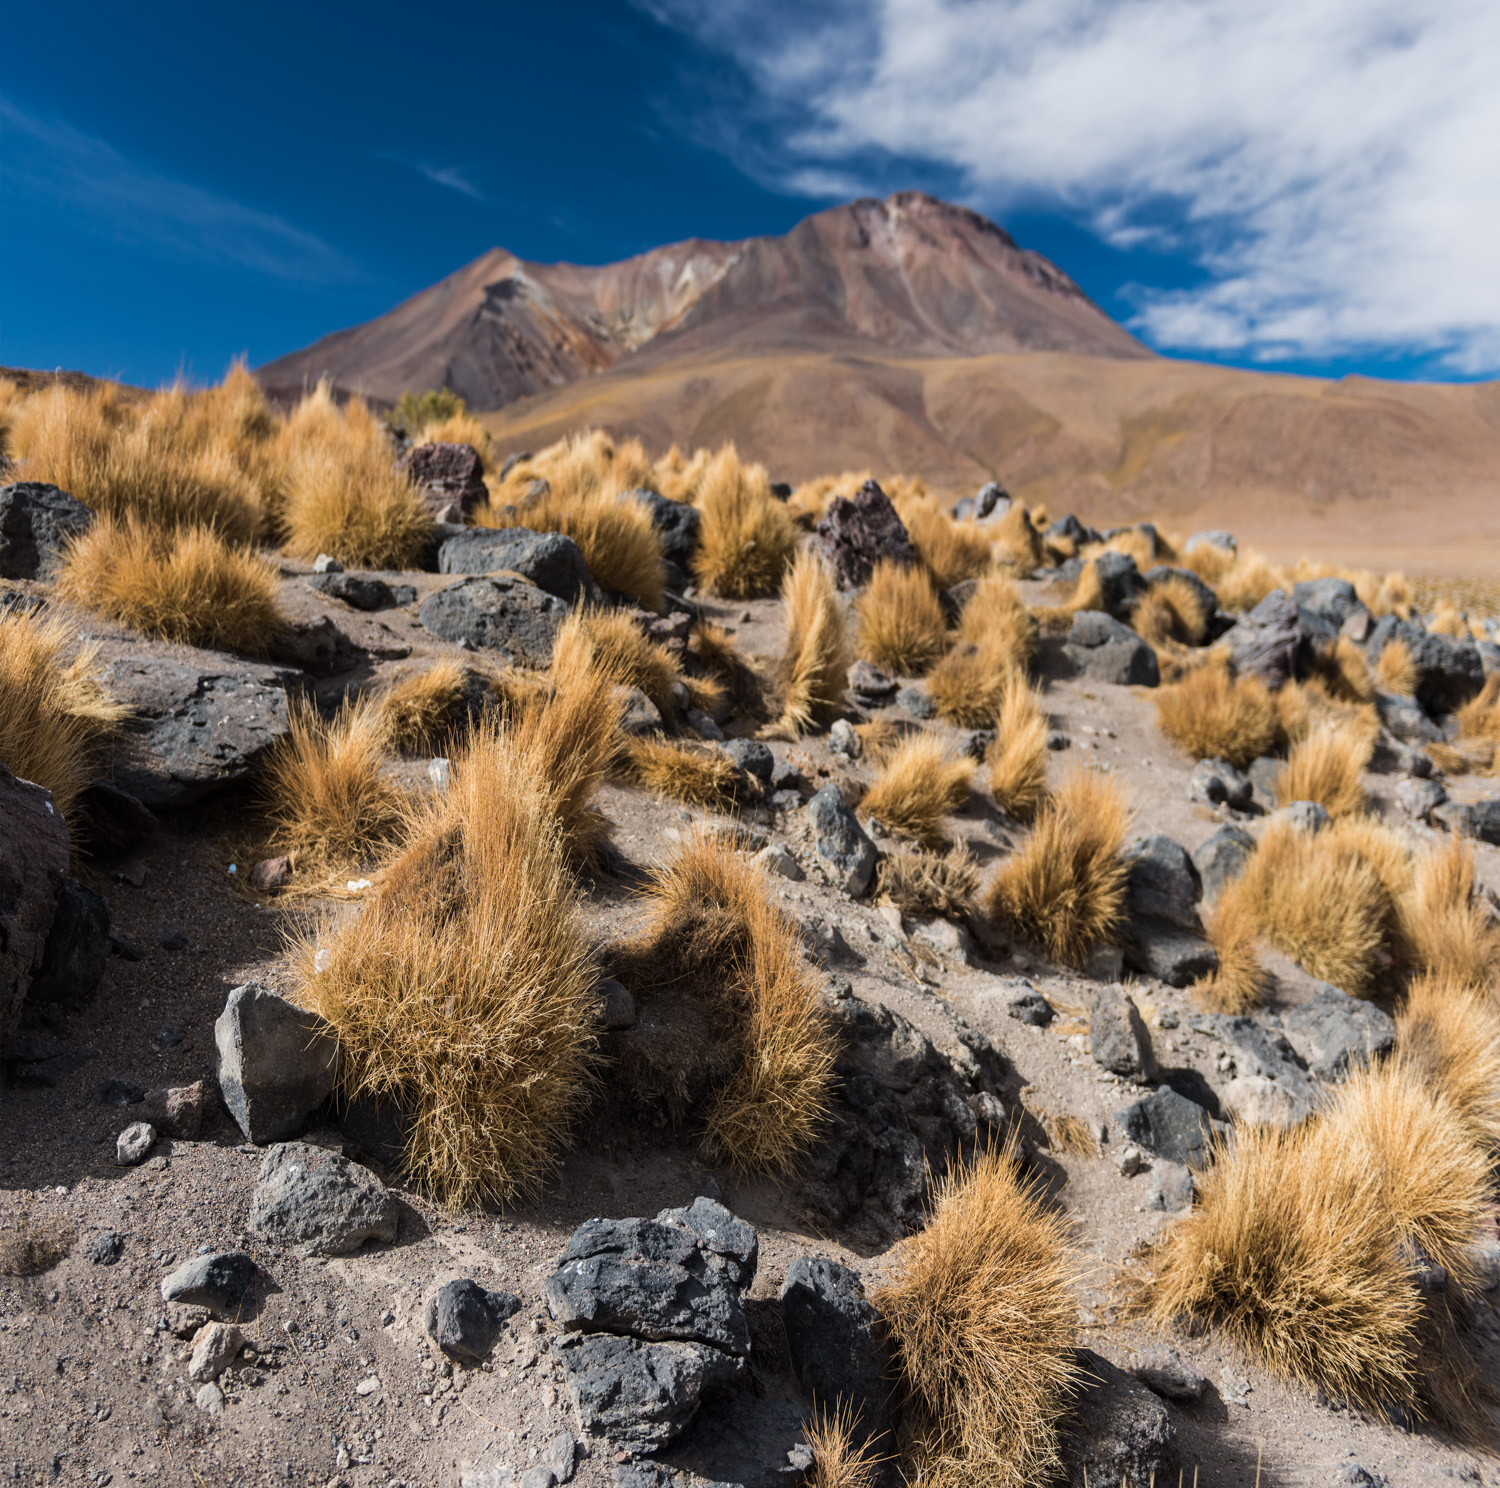 Bunch grass on the altiplano.